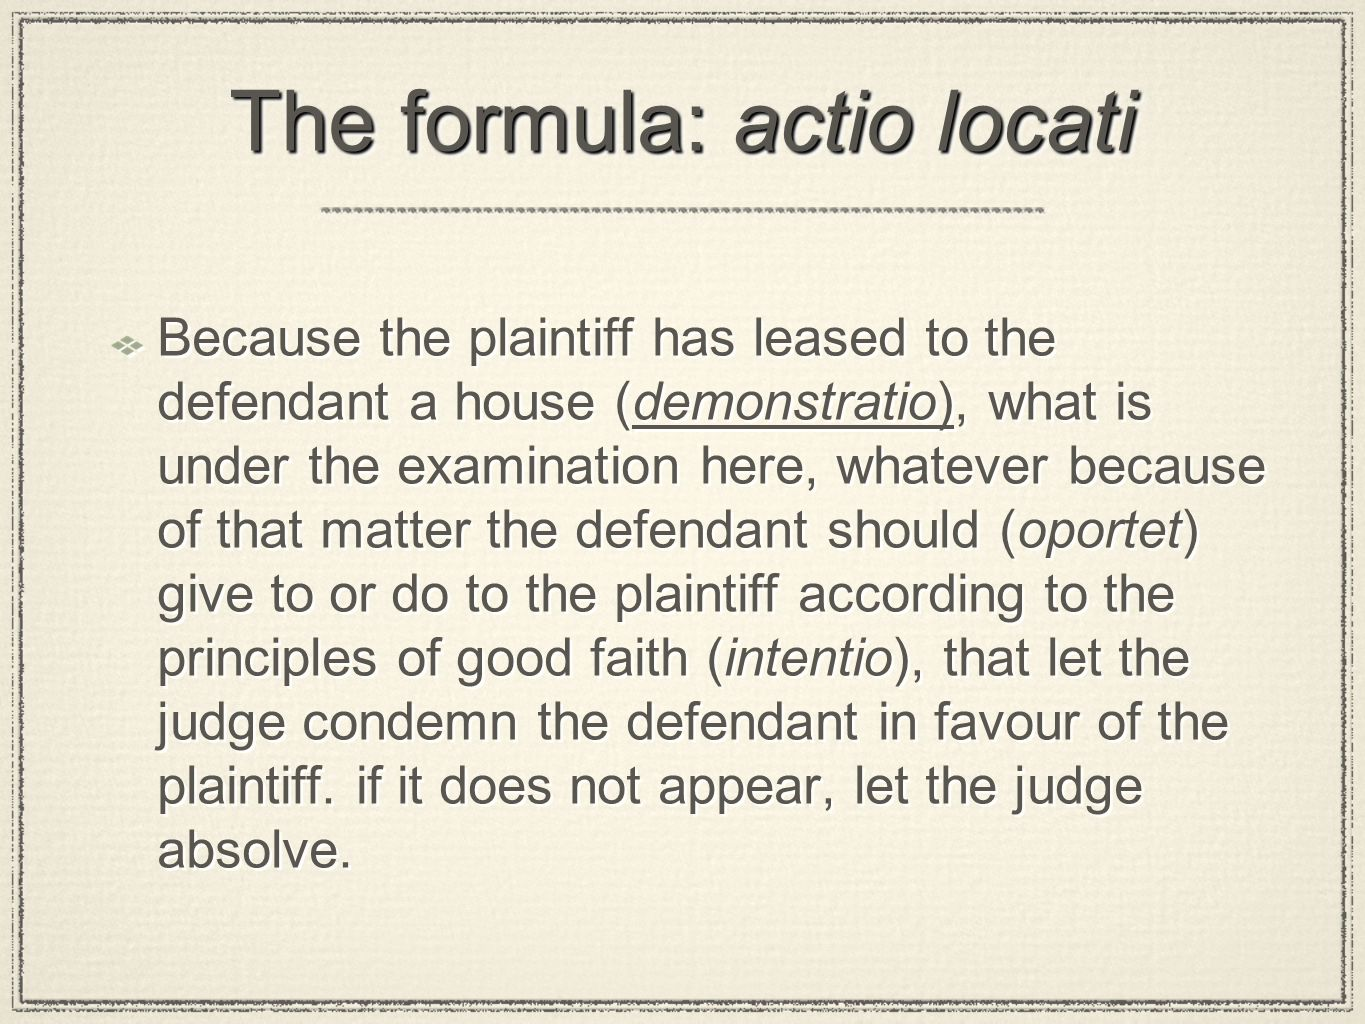 The formula: actio locati Because the plaintiff has leased to the defendant a house (demonstratio), what is under the examination here, whatever because of that matter the defendant should (oportet) give to or do to the plaintiff according to the principles of good faith (intentio), that let the judge condemn the defendant in favour of the plaintiff.